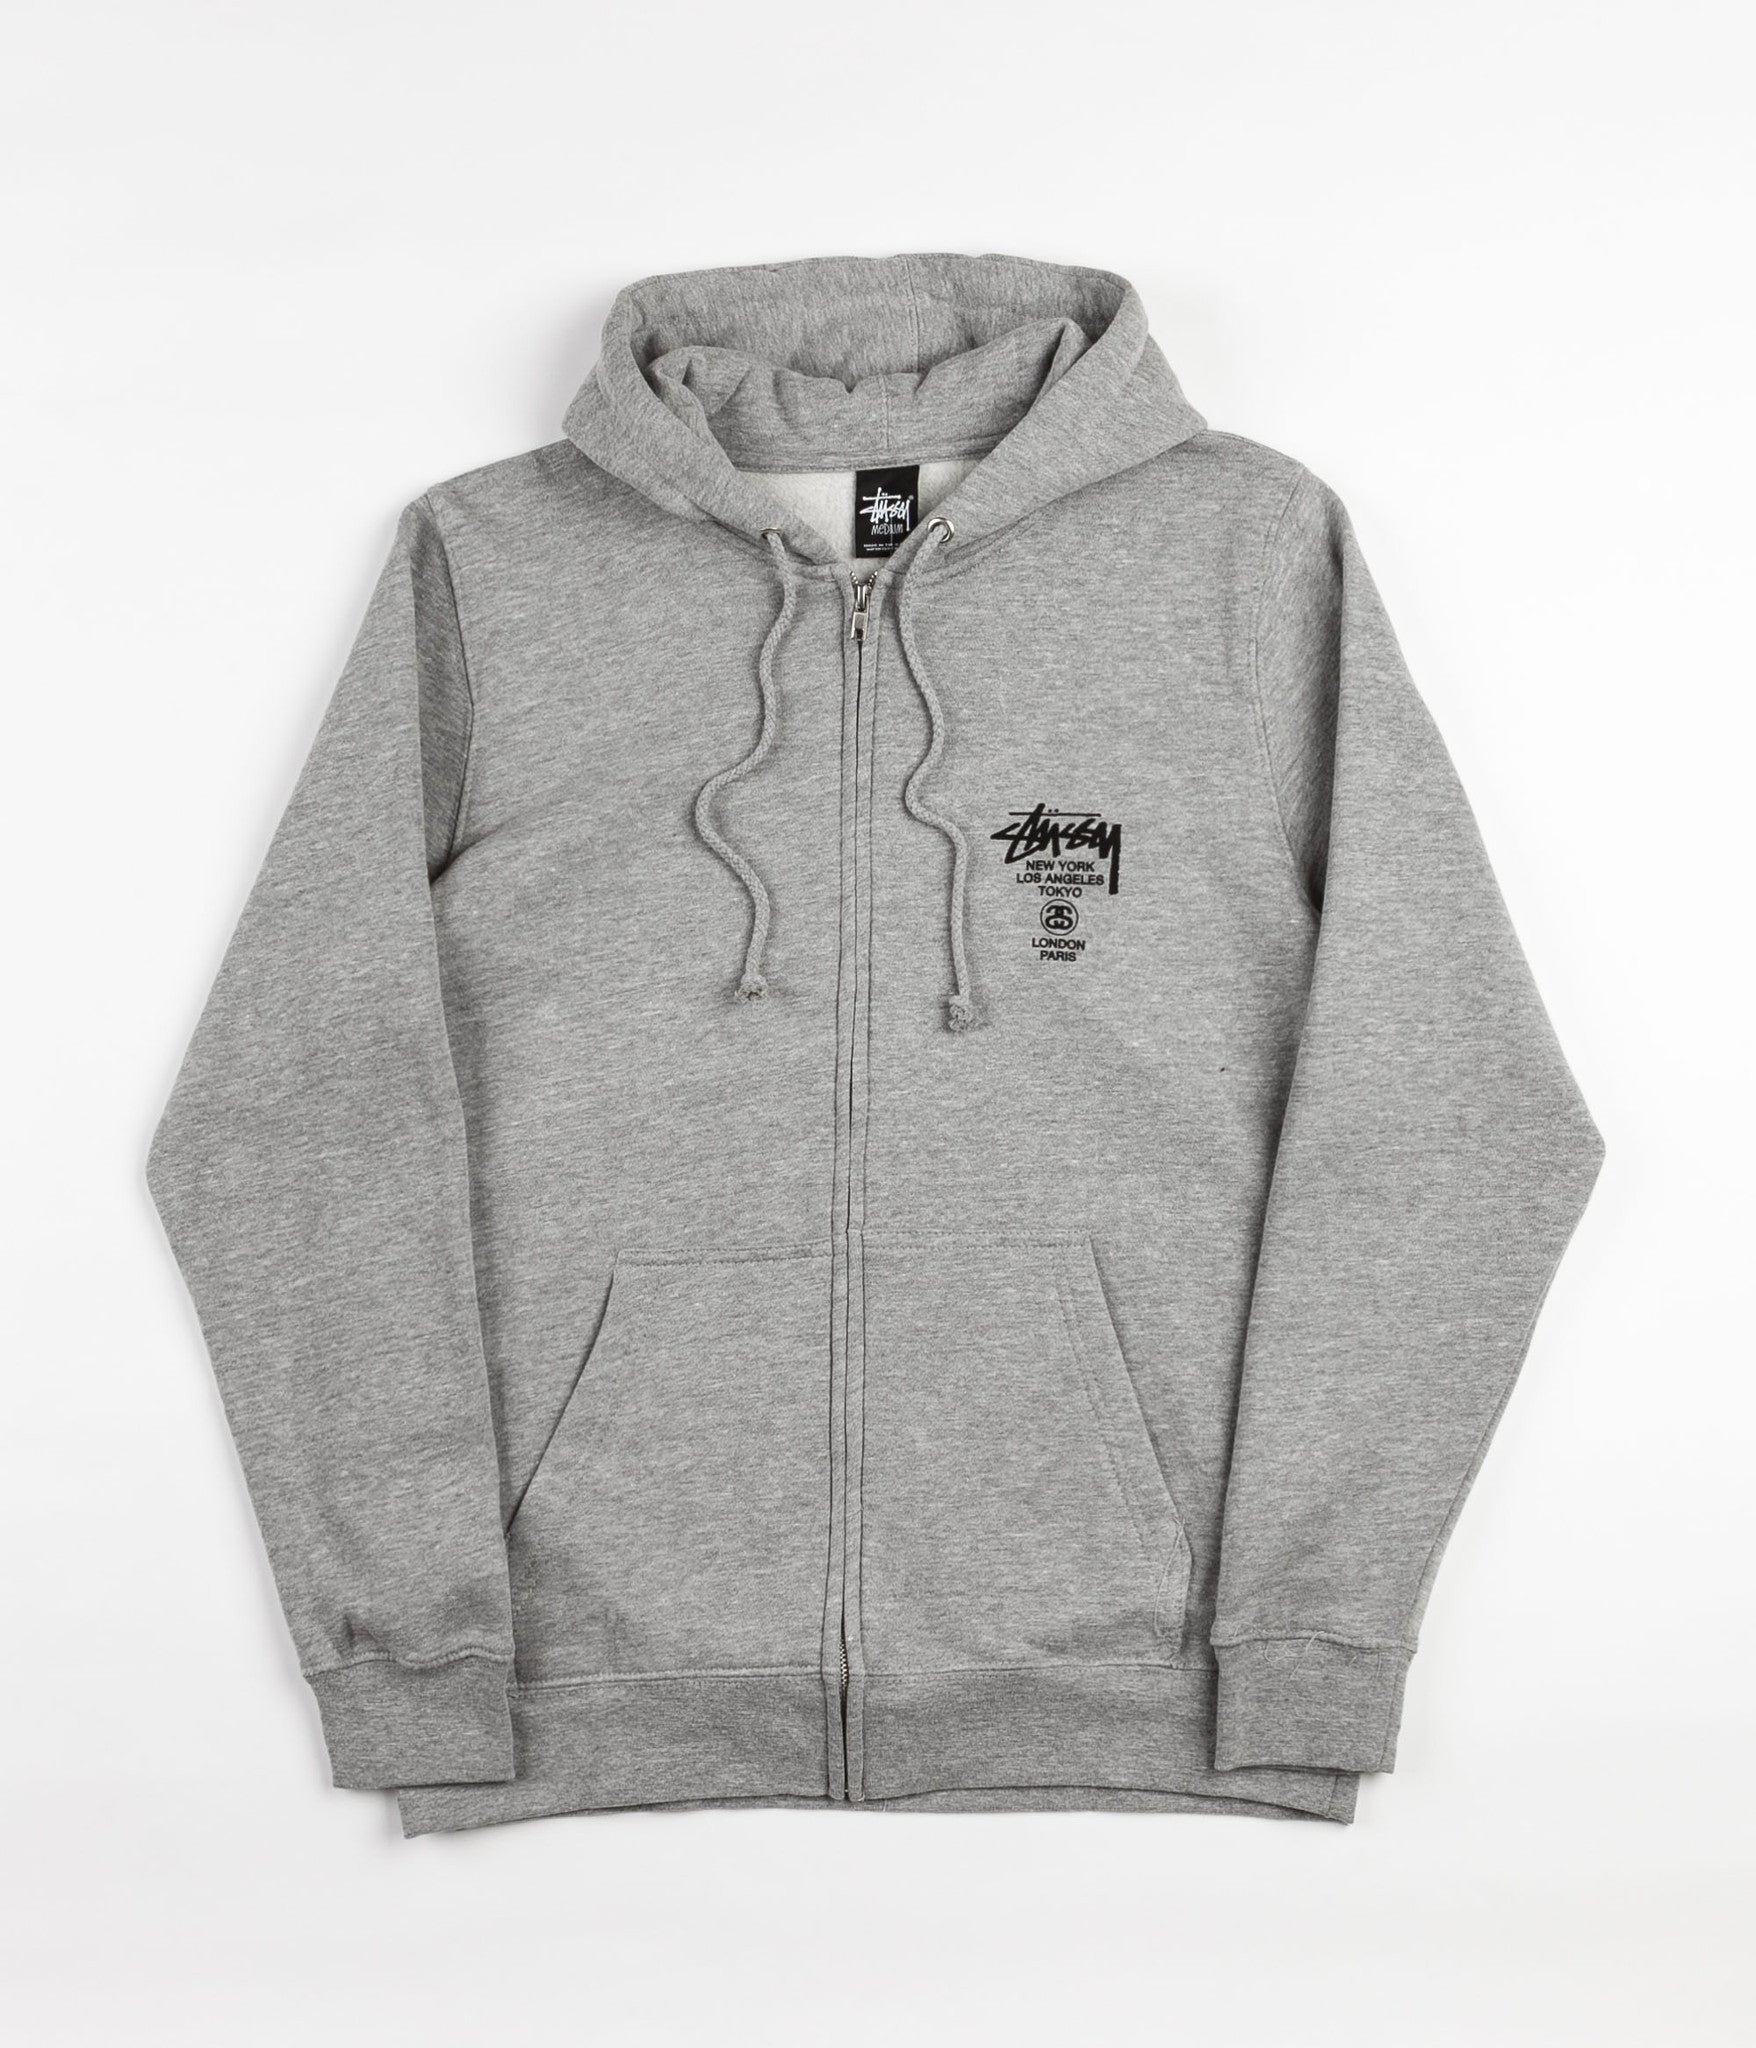 Stussy World Tour Zip Hooded Sweatshirt - Heather Grey